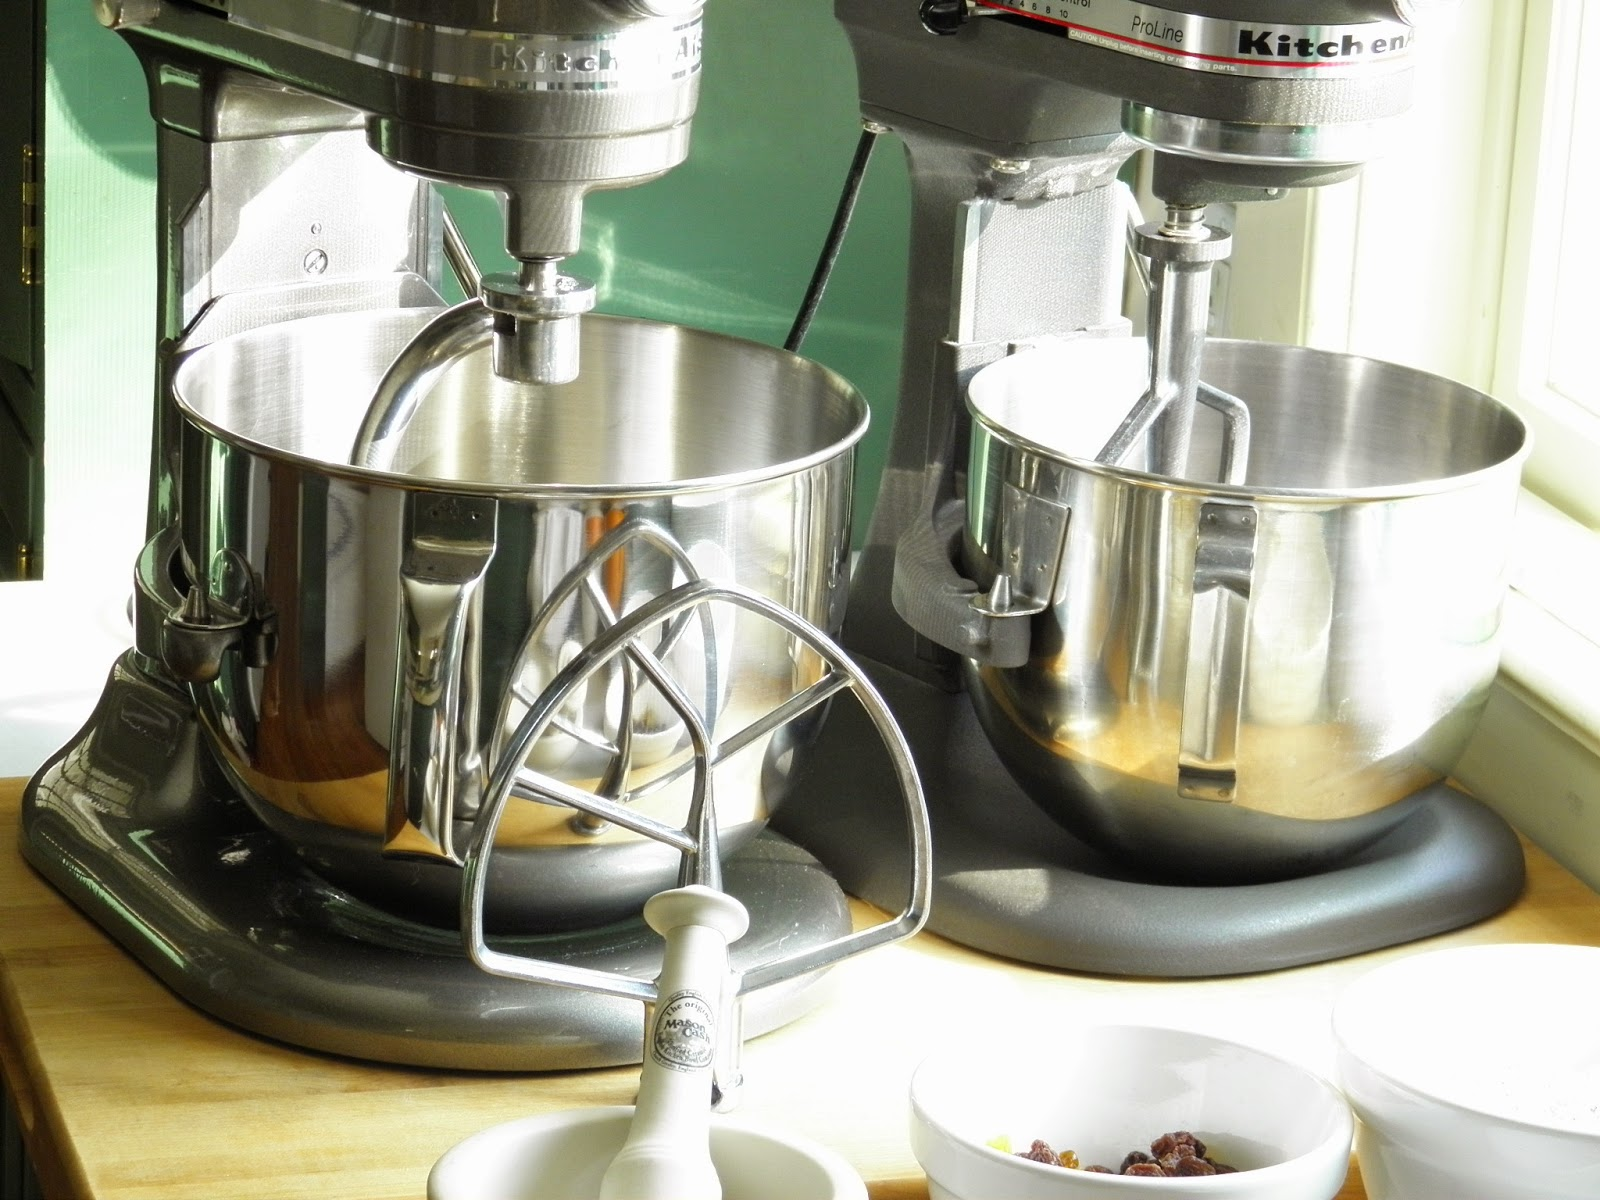 Good Things by David: KitchenAid® Pro Line® Series 7-Qt. Mixer on kitchen aid coffee maker, kitchen aid cooker, kitchen aid stove, kitchen aid toaster, kitchen aid oven, kitchen aid scraper, kitchen aid grinder, kitchen aid cooktop, kitchen aid measuring spoons, kitchen aid fan, kitchen aid cookware, kitchen aid freezer, kitchen aid blender, kitchen aid food, kitchen aid chopper, kitchen aid juicer, kitchen aid kettle, kitchen aid valves, kitchen aid can opener, kitchen aid colander,